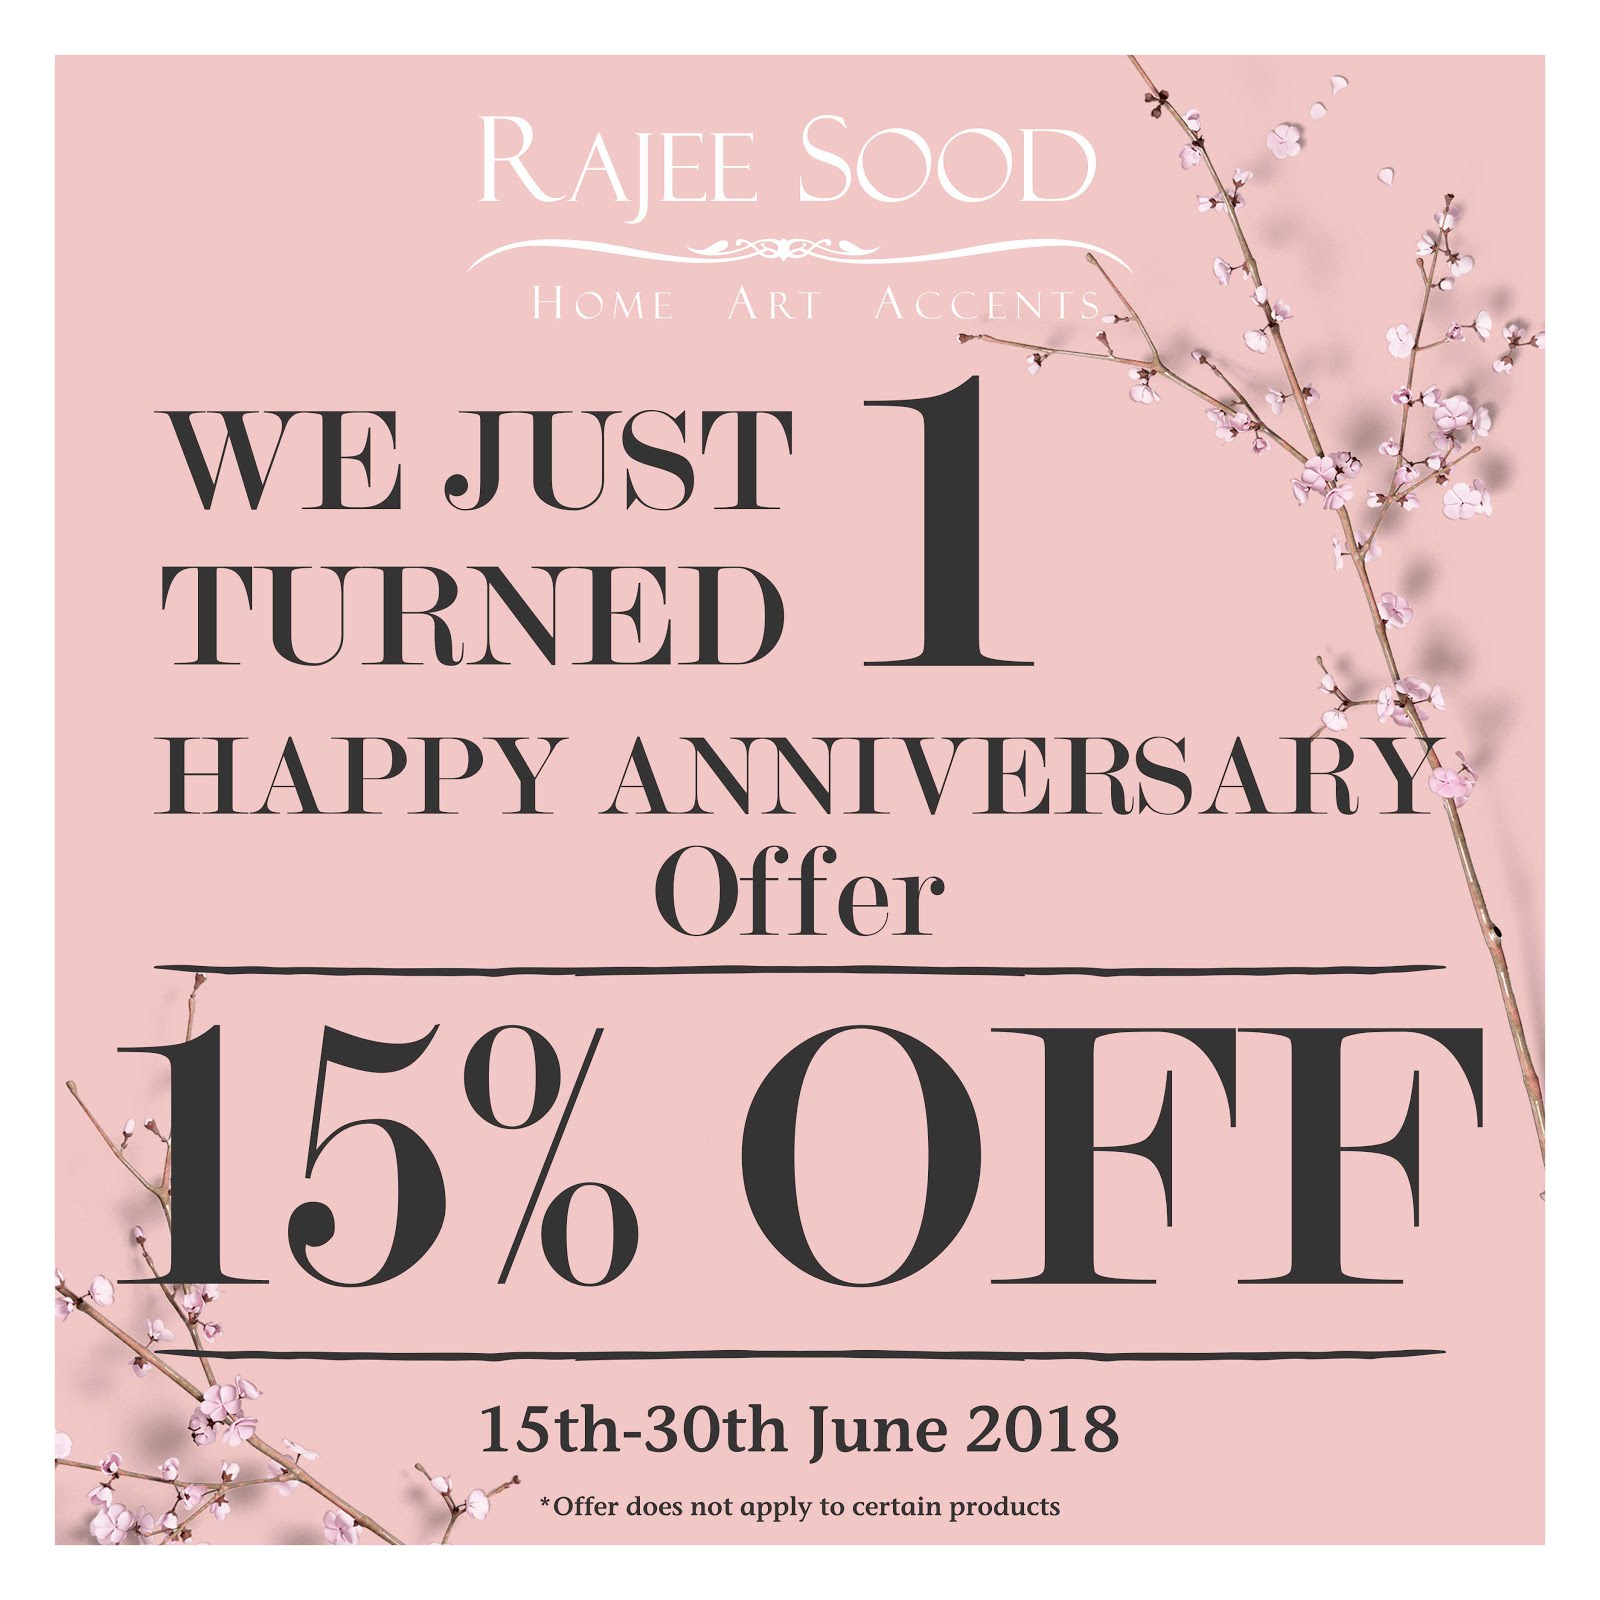 Special Anniversary Offer